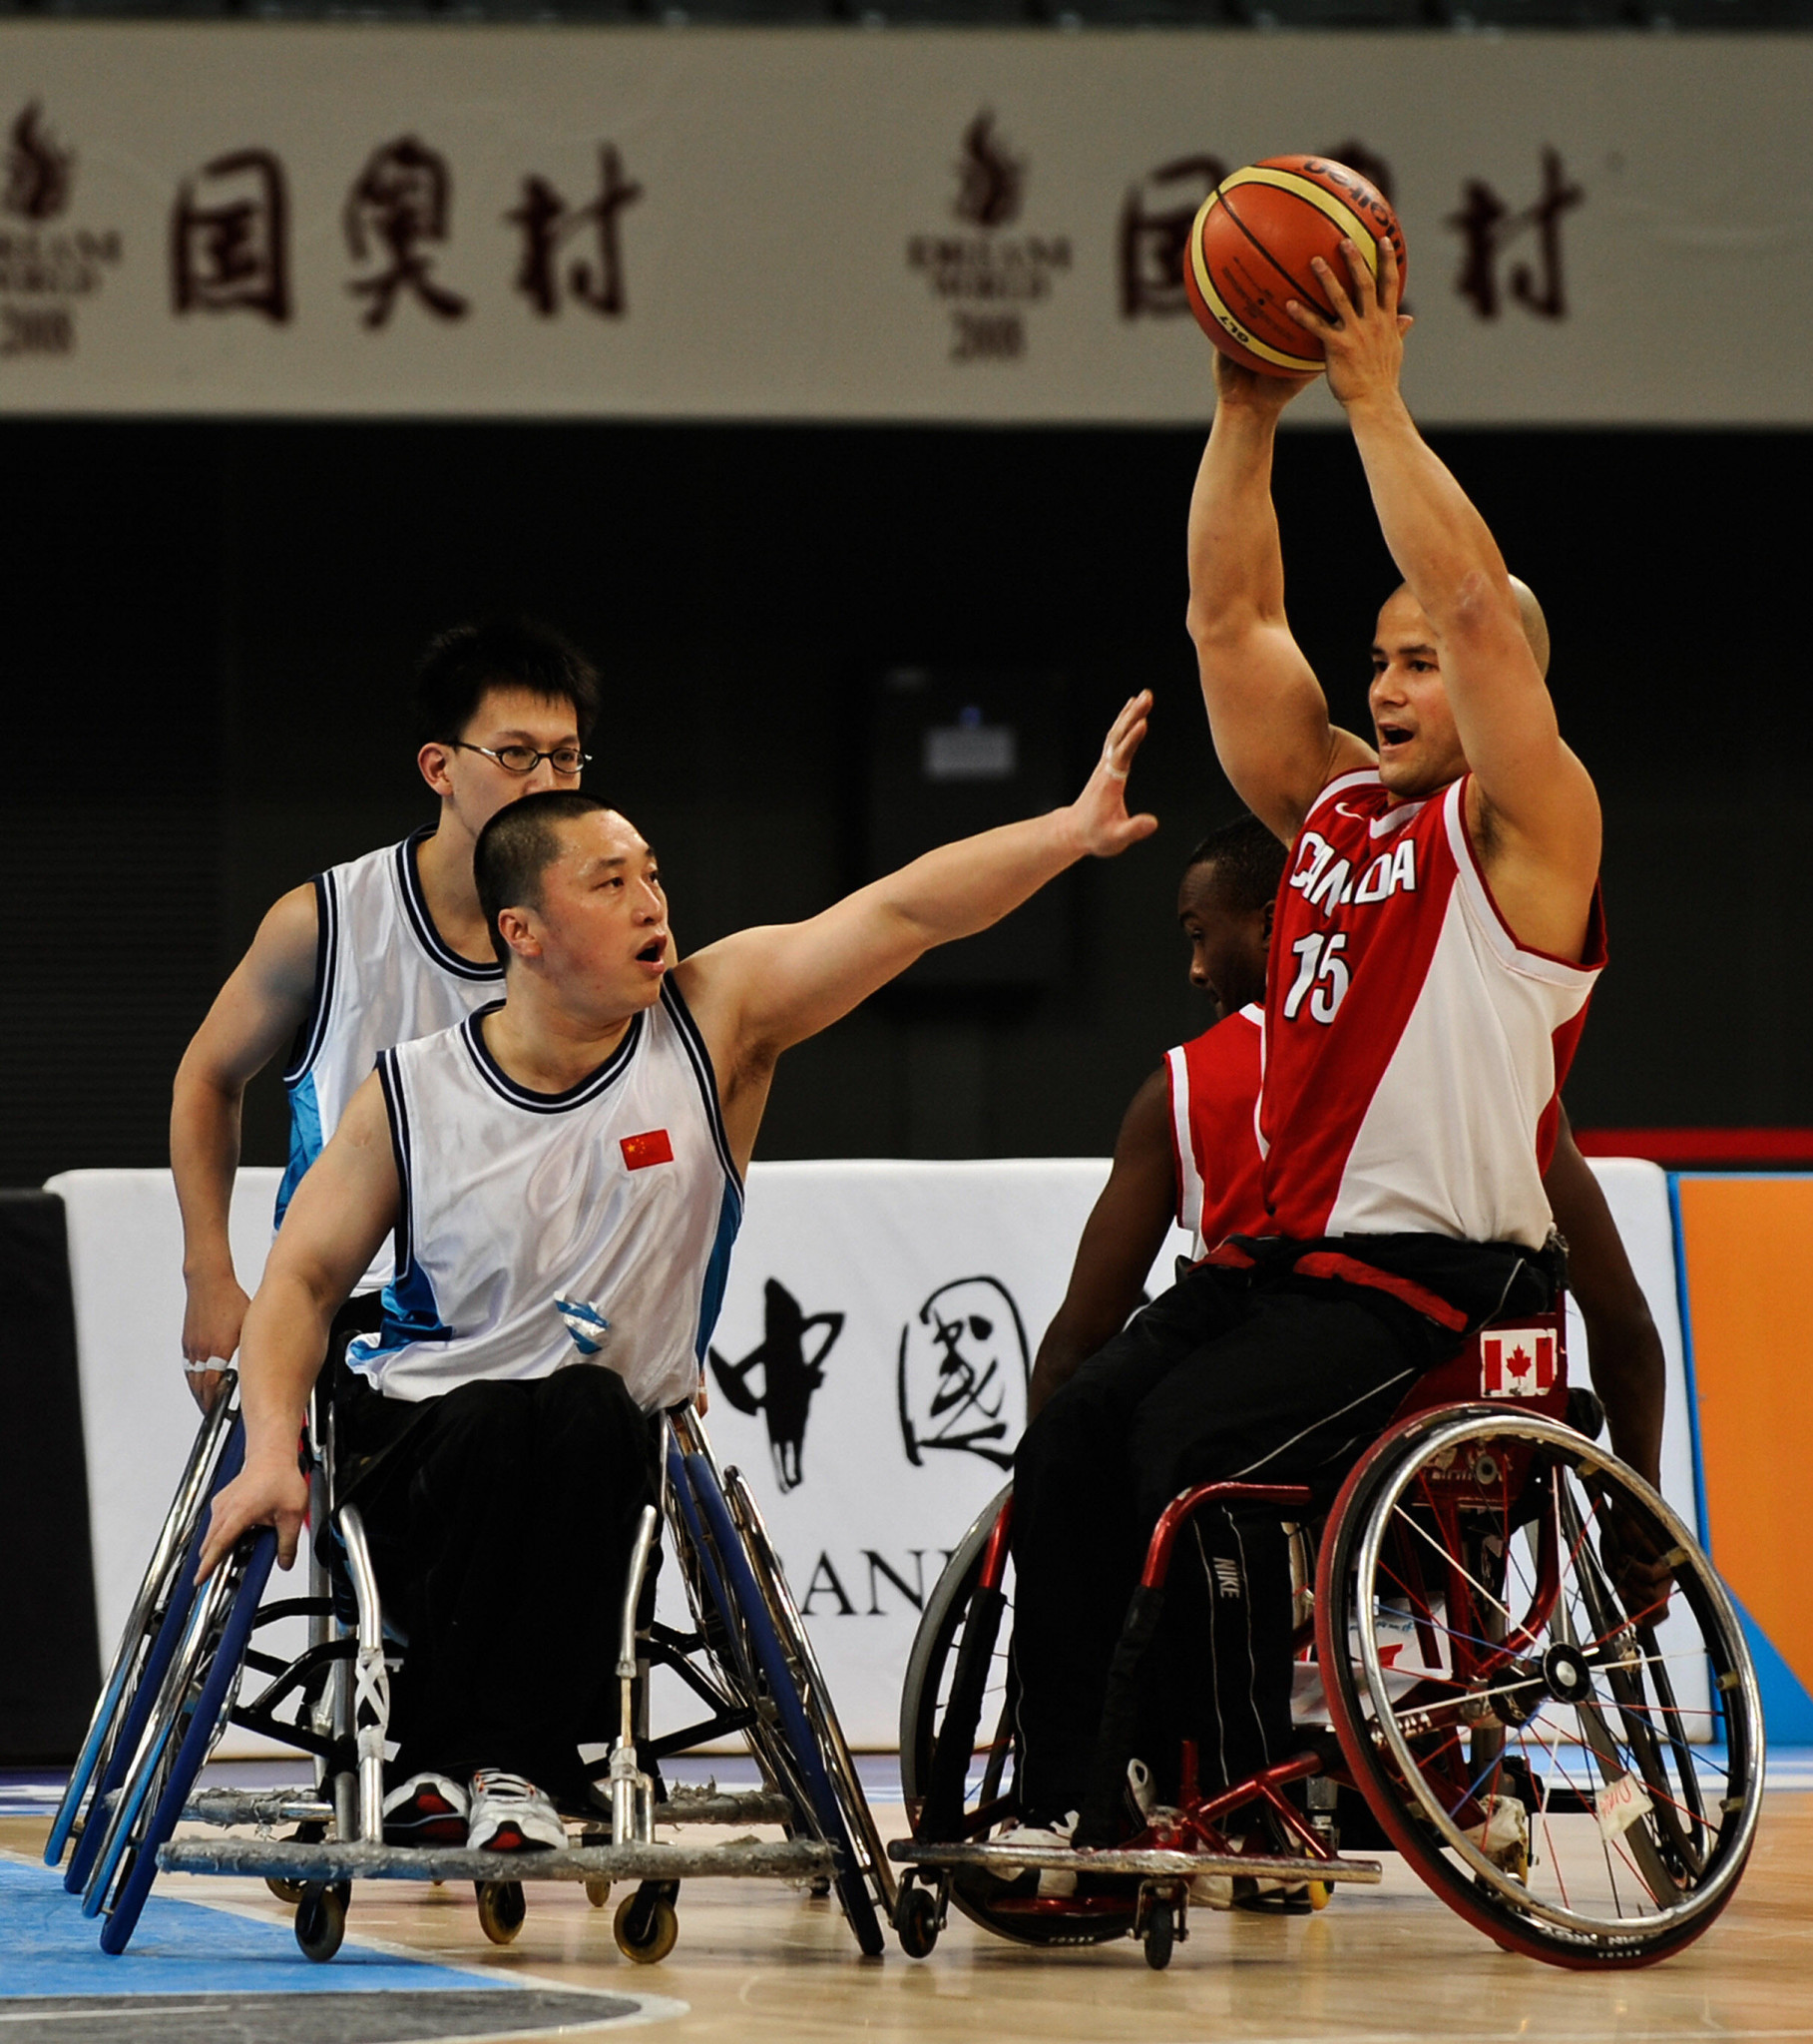 Canada's double Paralympic champion David Eng has already been ruled ineligible ©Getty Images